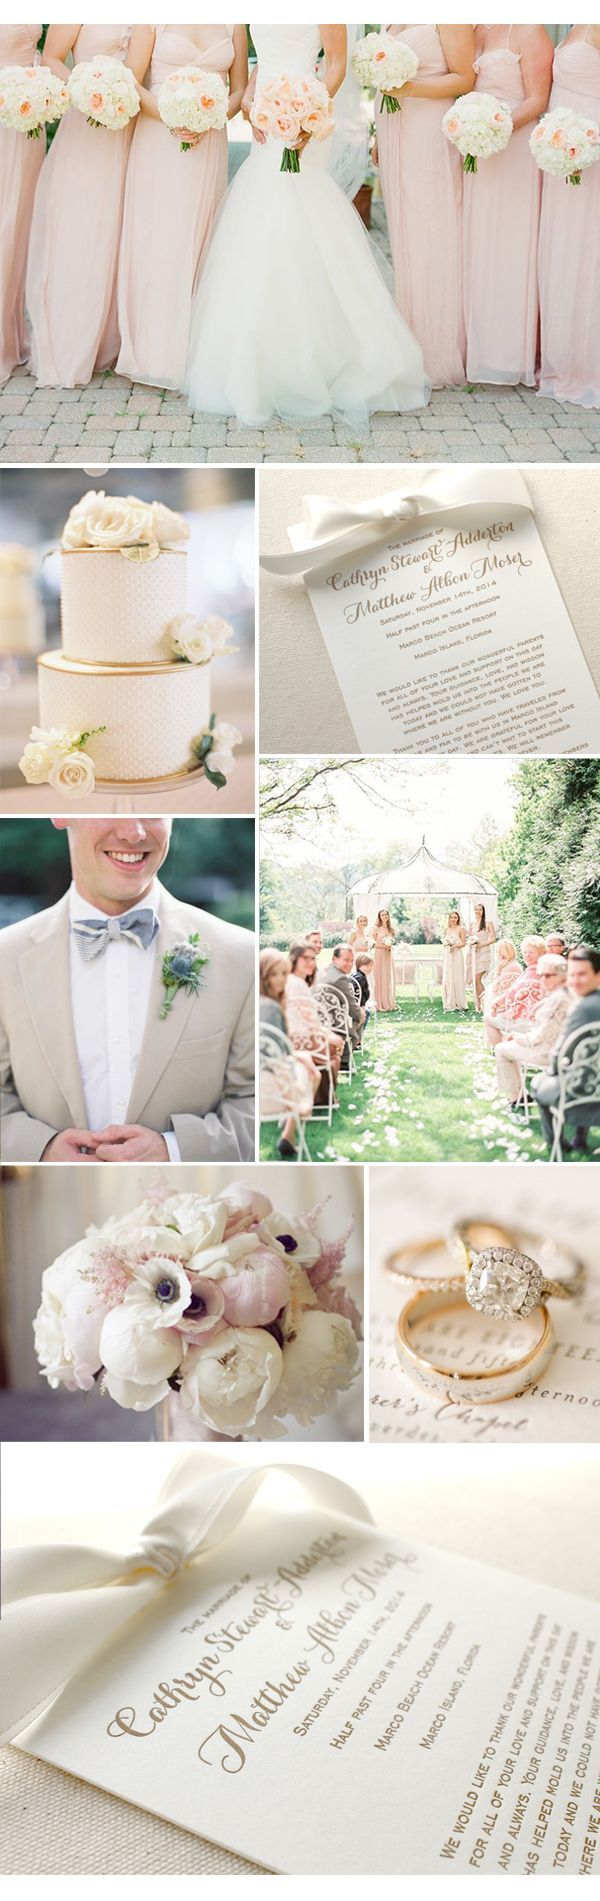 118 best Pretty in Pink Wedding images on Pinterest | Amazing cakes ...